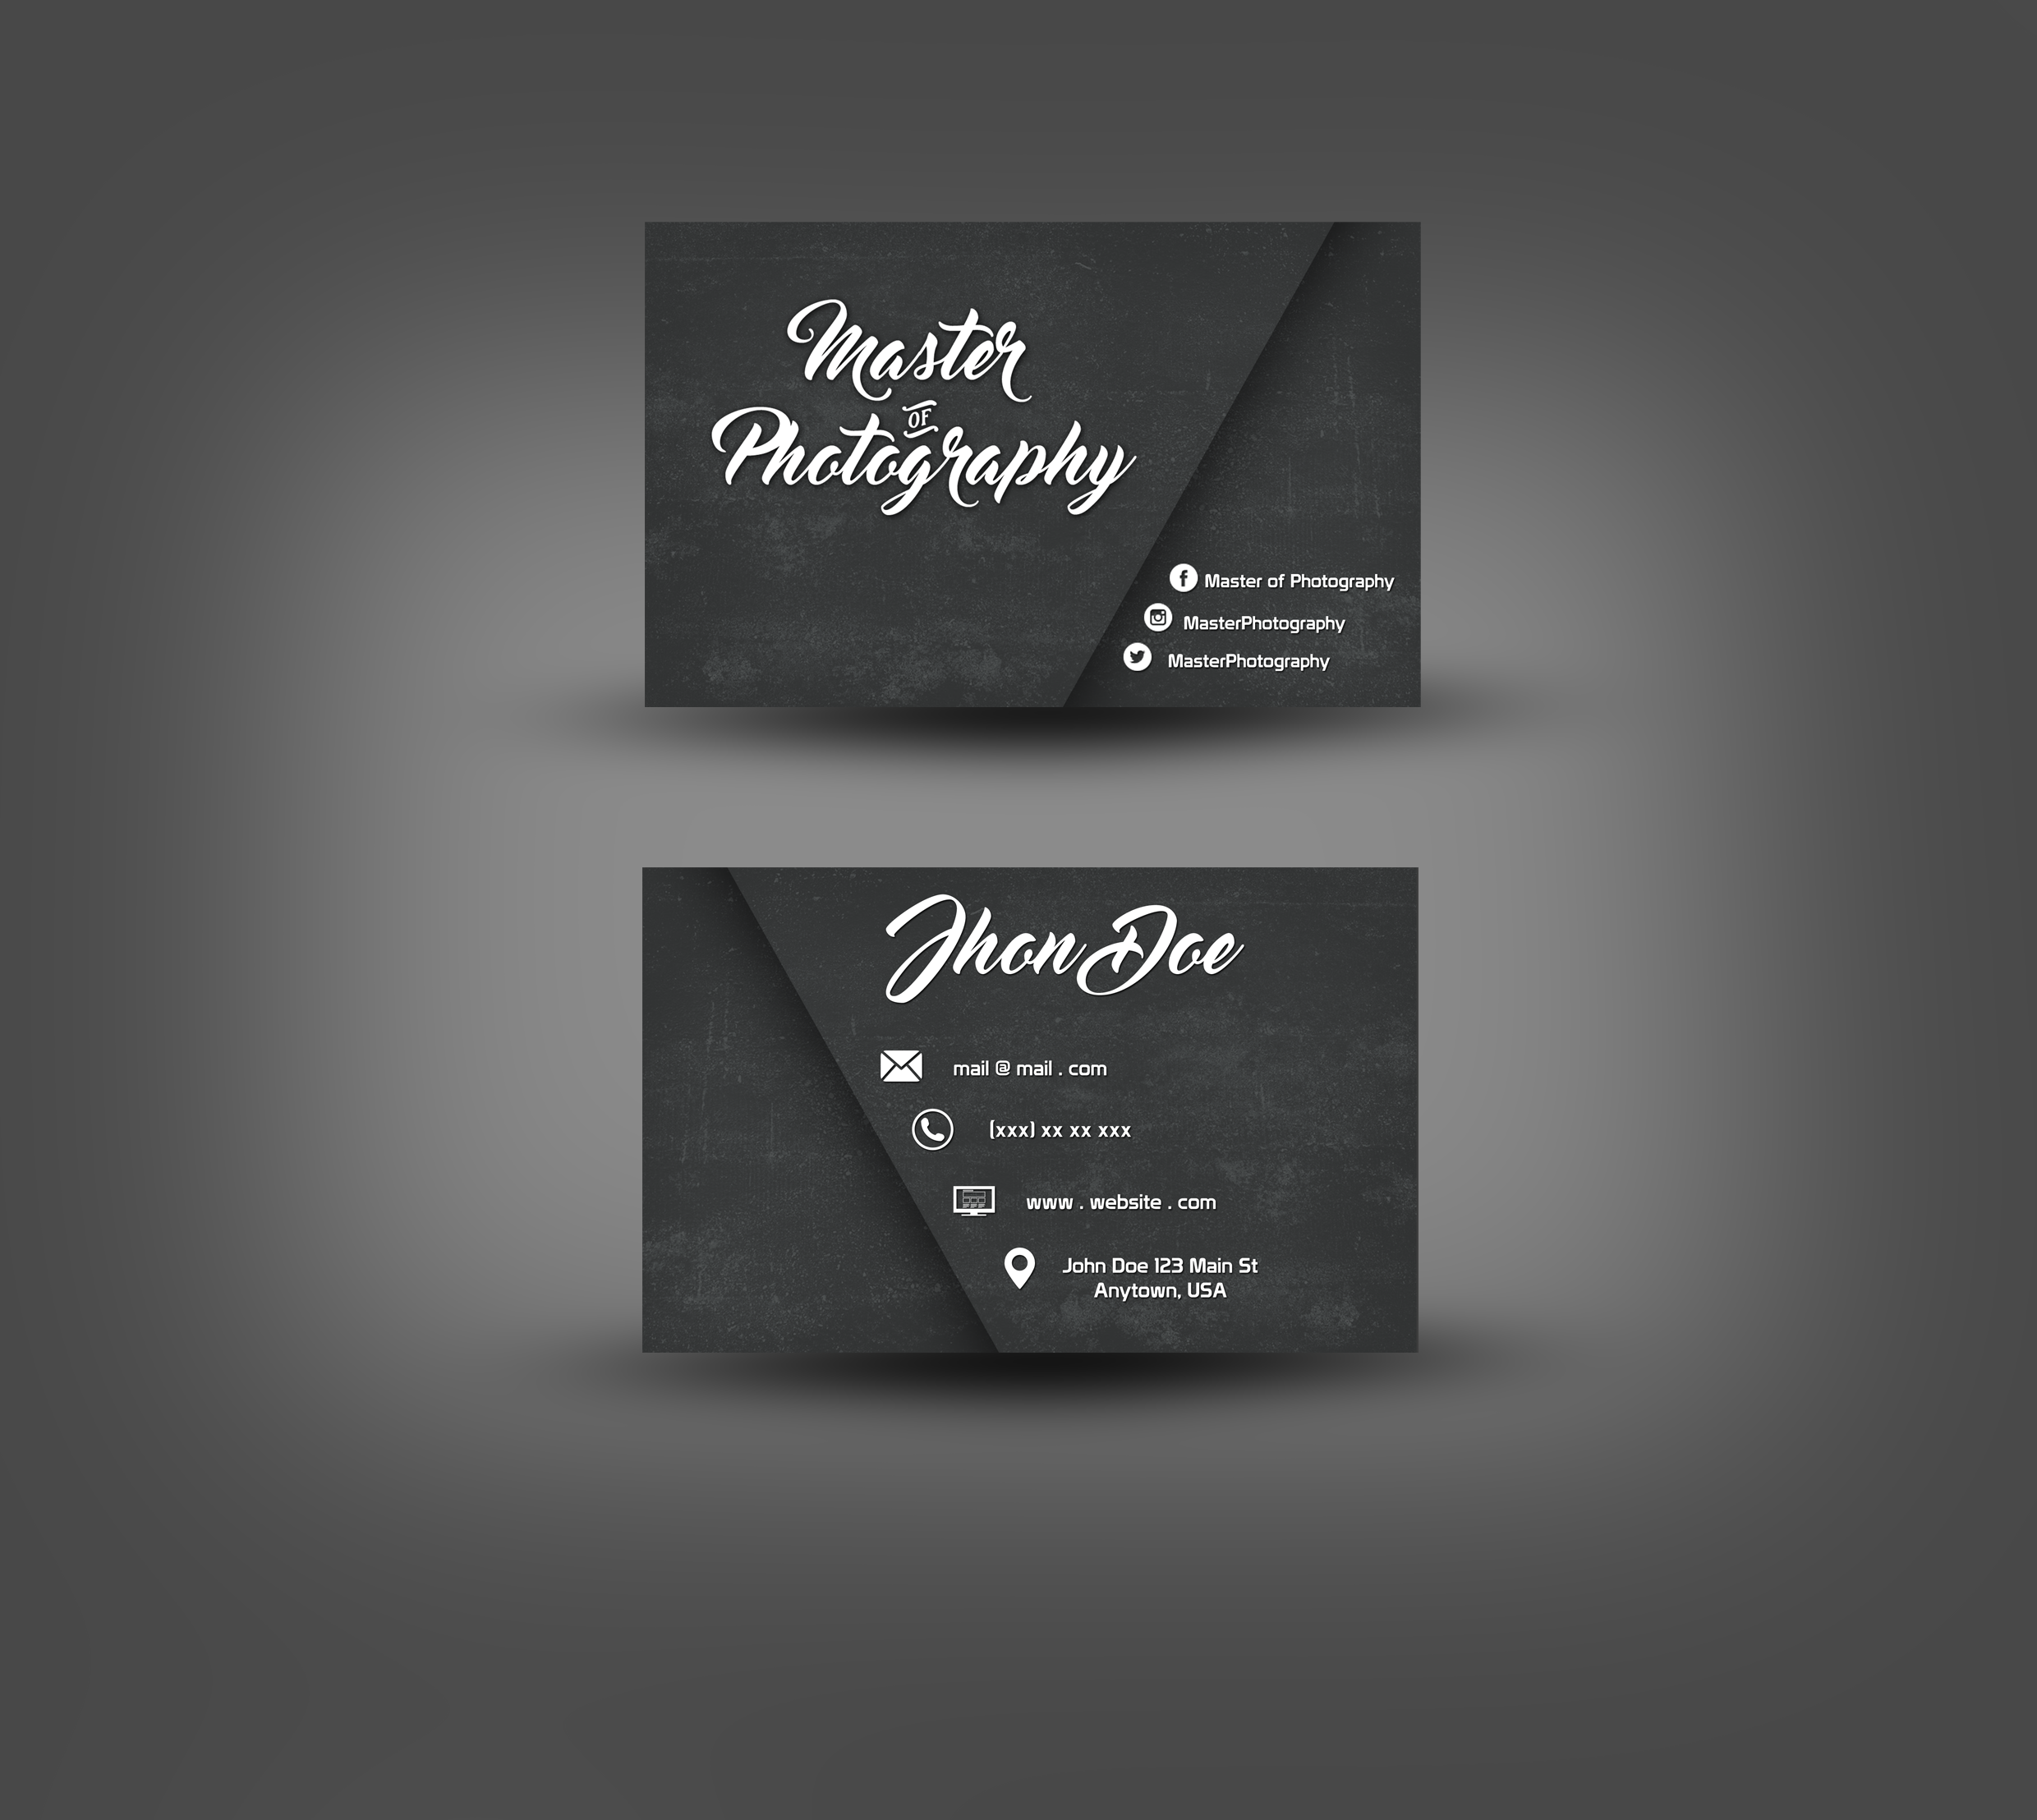 The Master of Photography Business Card by AmineDesigns on DeviantArt